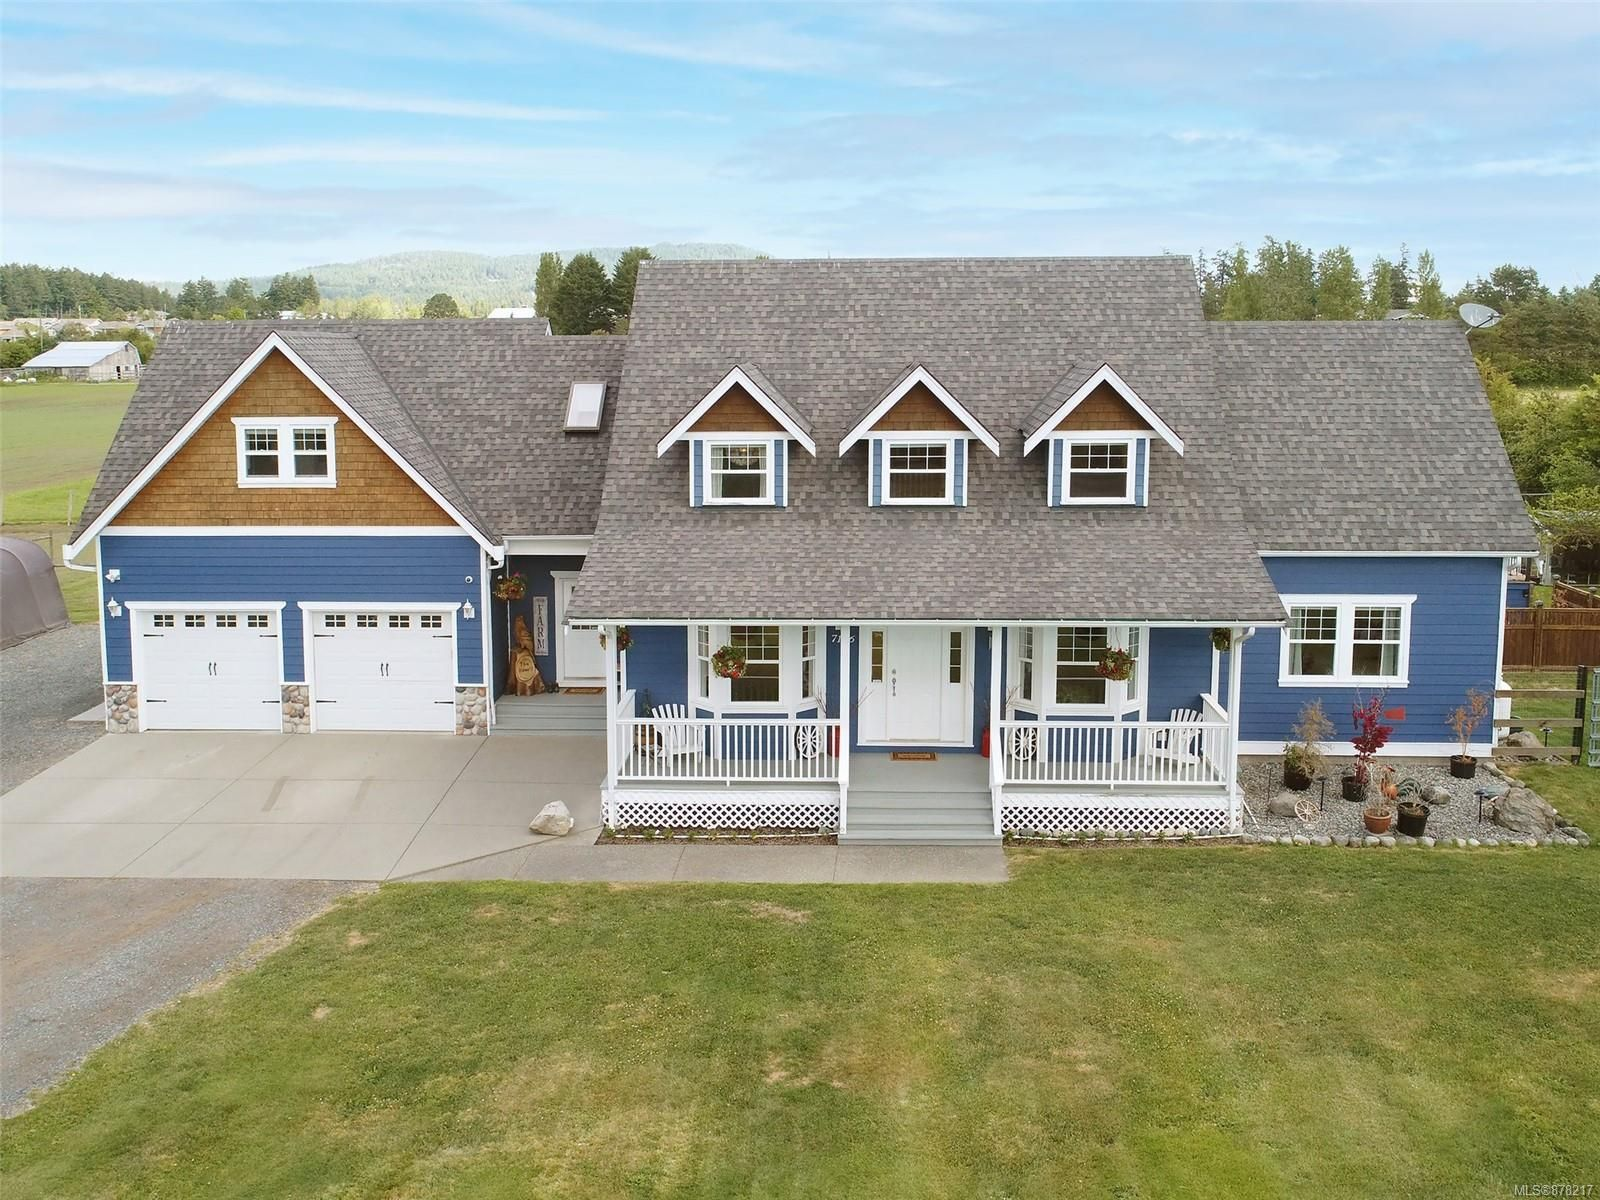 Main Photo: 7146 Wallace Dr in : CS Brentwood Bay House for sale (Central Saanich)  : MLS®# 878217